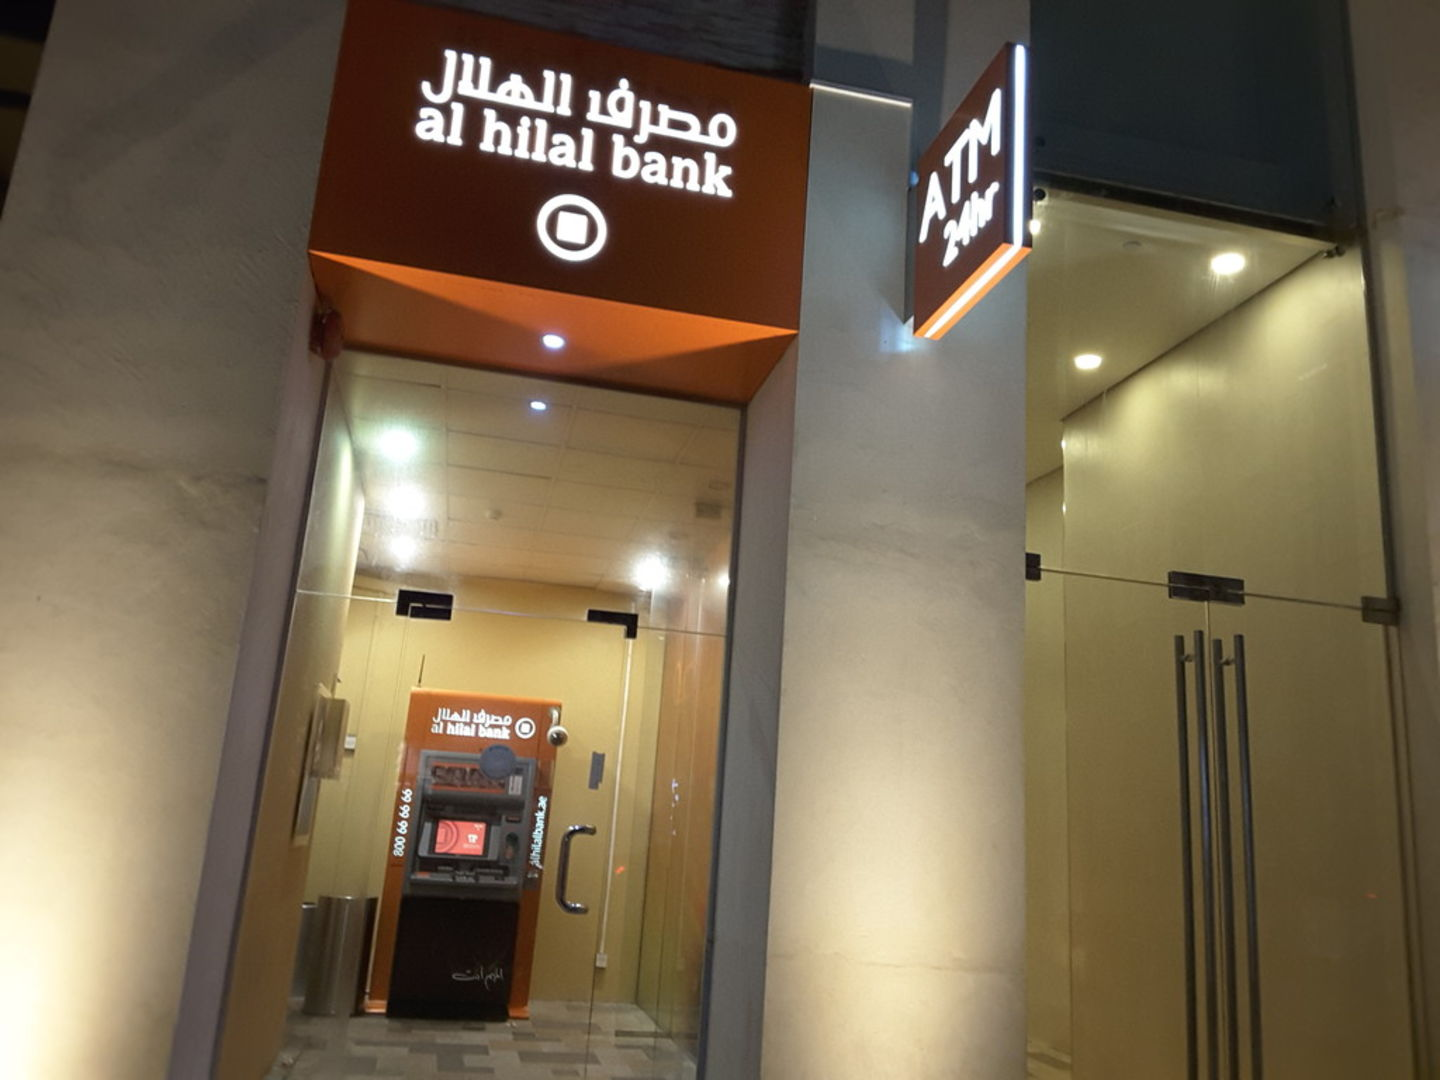 HiDubai-business-al-hilal-bank-atm-finance-legal-banks-atms-jumeirah-beach-residence-marsa-dubai-dubai-5